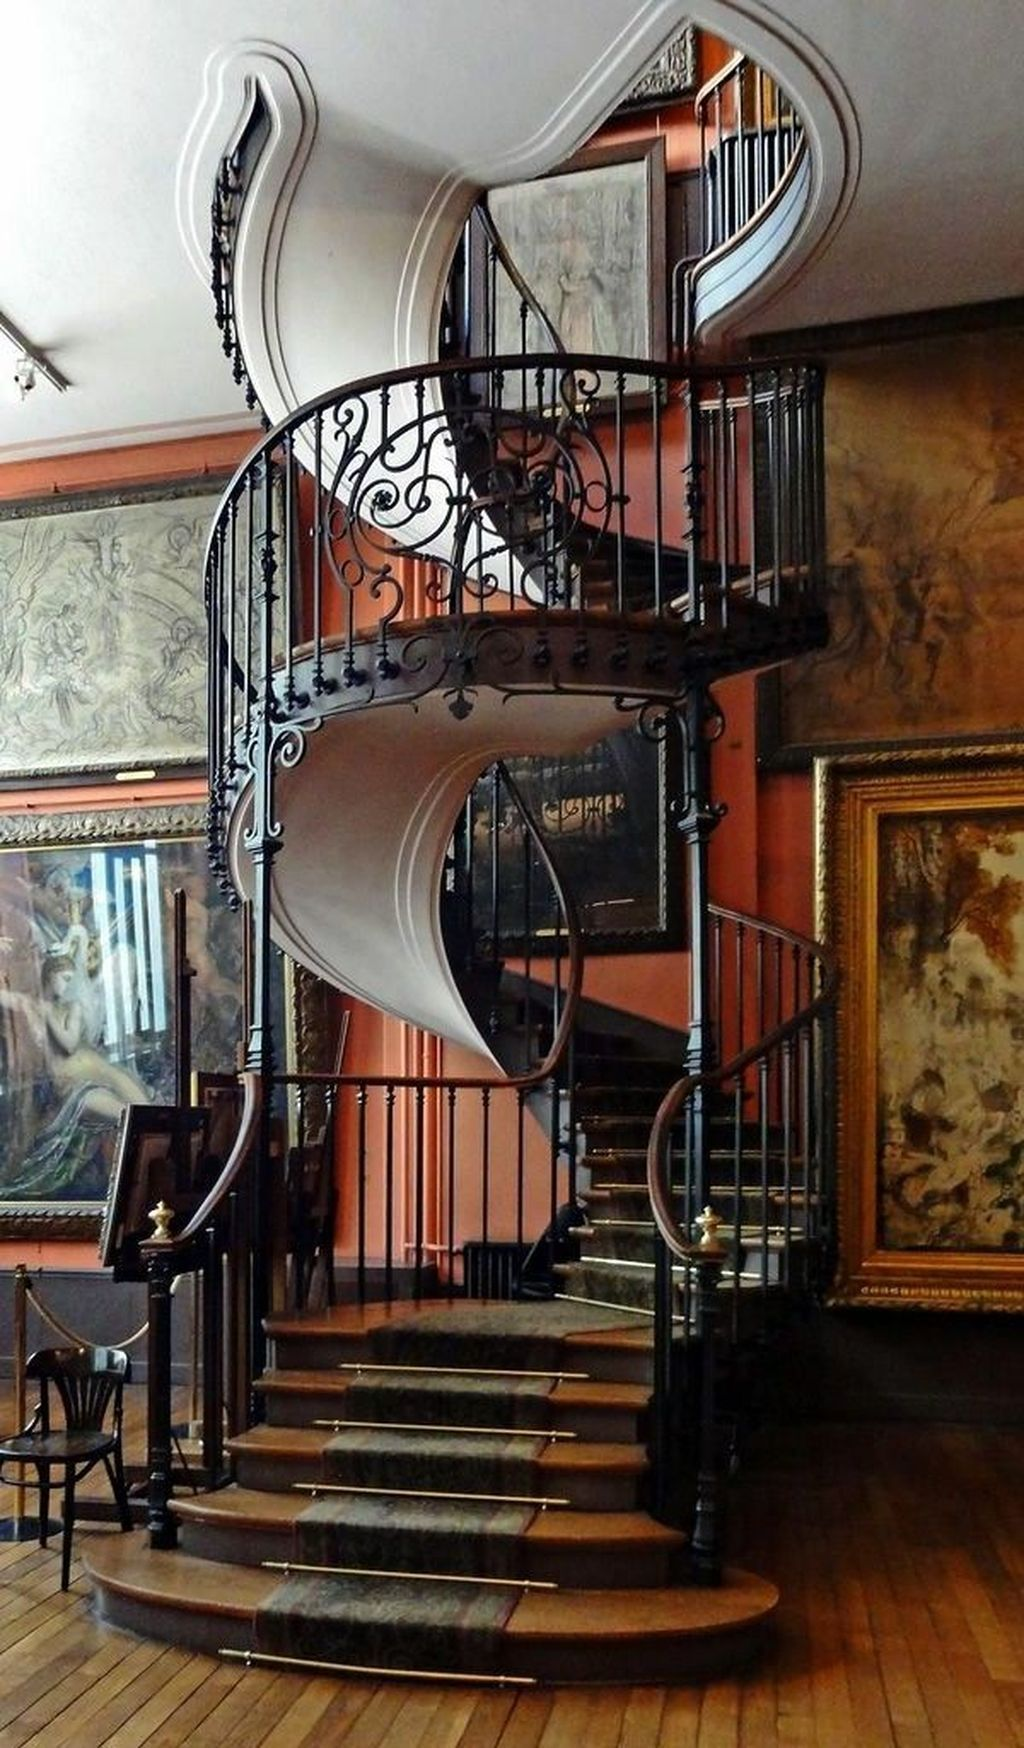 Best 30 Adorable Staircase Design Ideas For Home Stairways 400 x 300